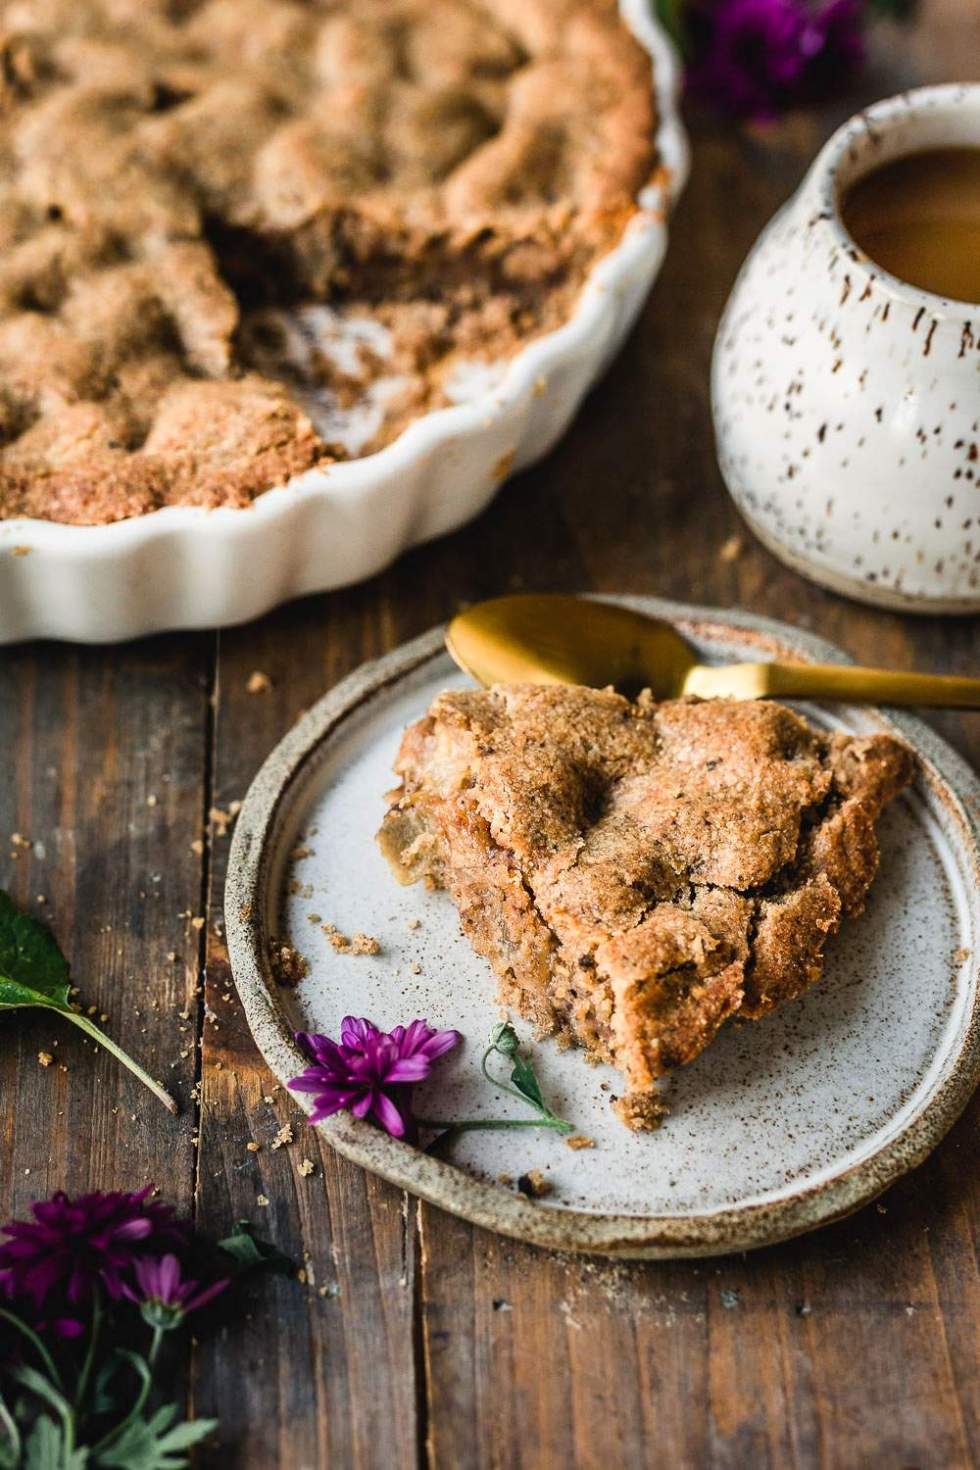 Vegan apple pie with buckwheat crust